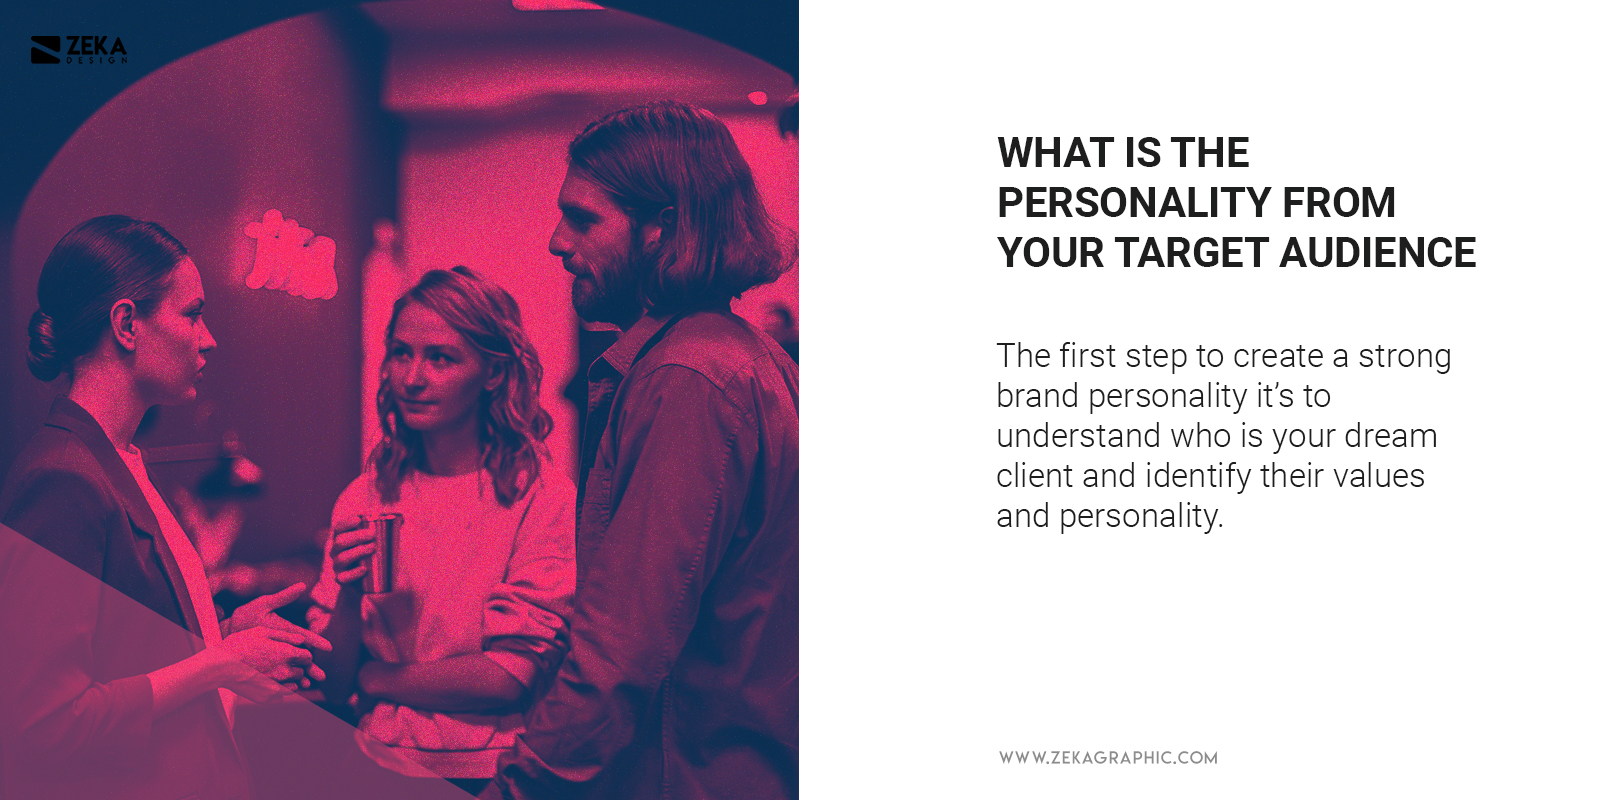 Brand Personality Target Audience Values